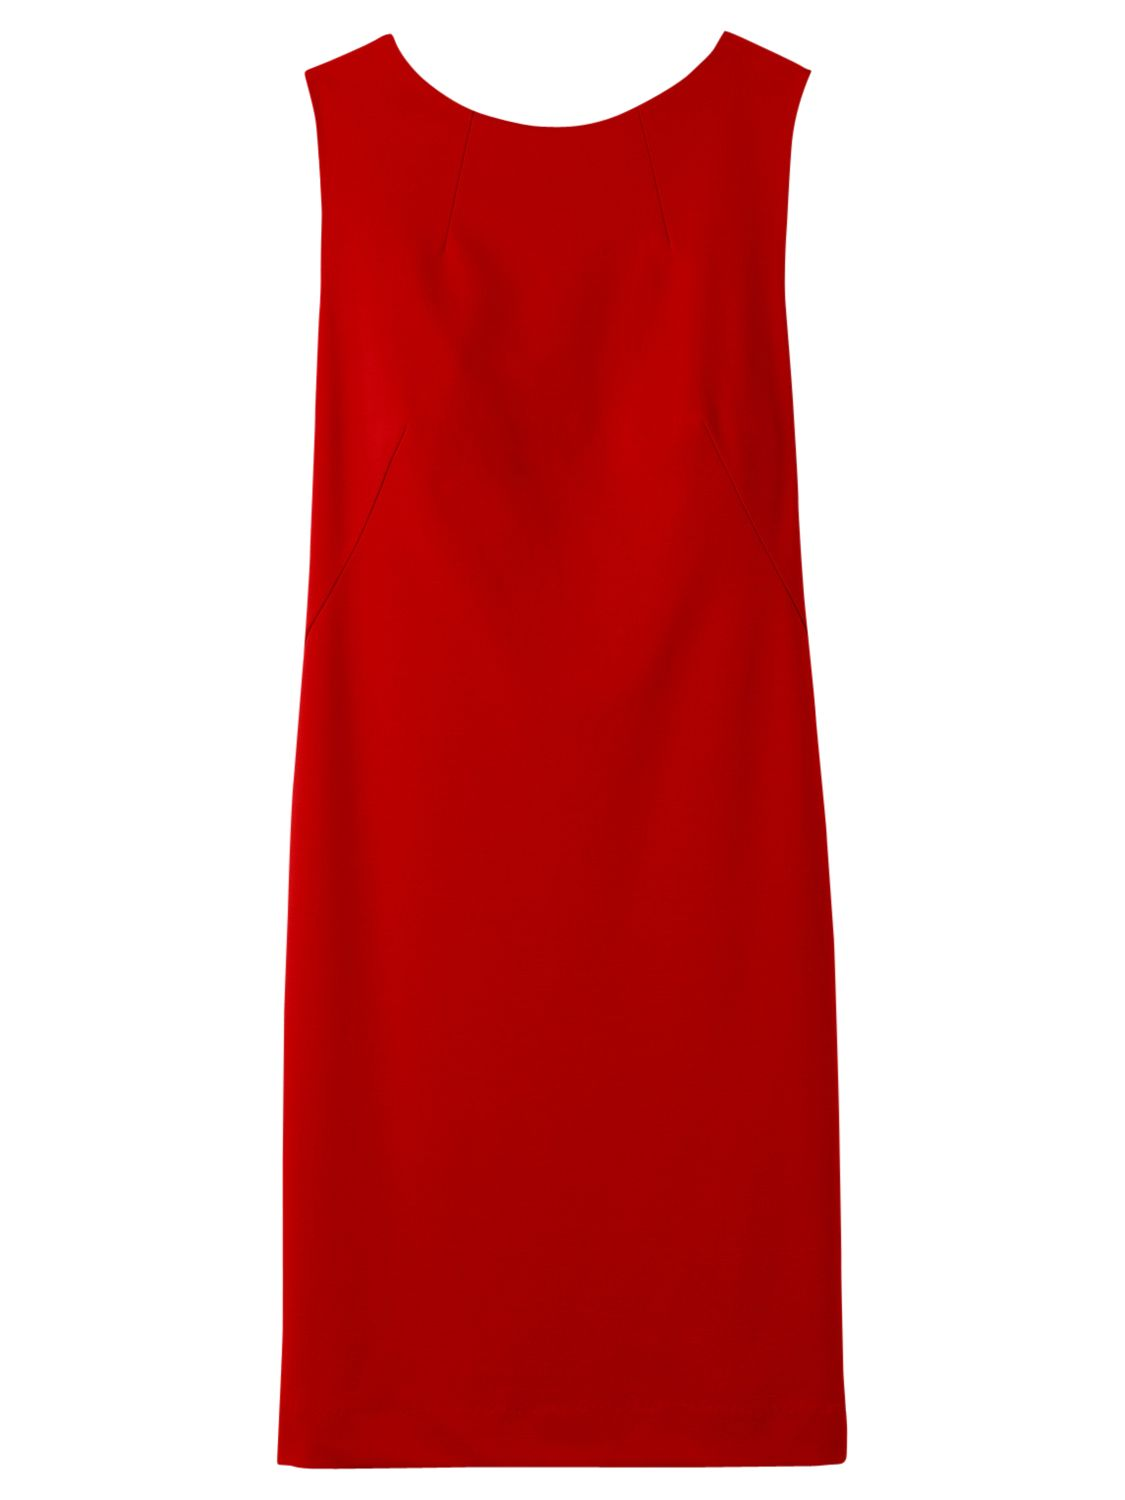 winser round neck miracle dress hollywood red, winser, round, neck, miracle, dress, hollywood, red, 8|10|16, women, womens dresses, special offers, womenswear offers, latest reductions, womens dresses offers, gifts, valentines day, red dress, 1719321